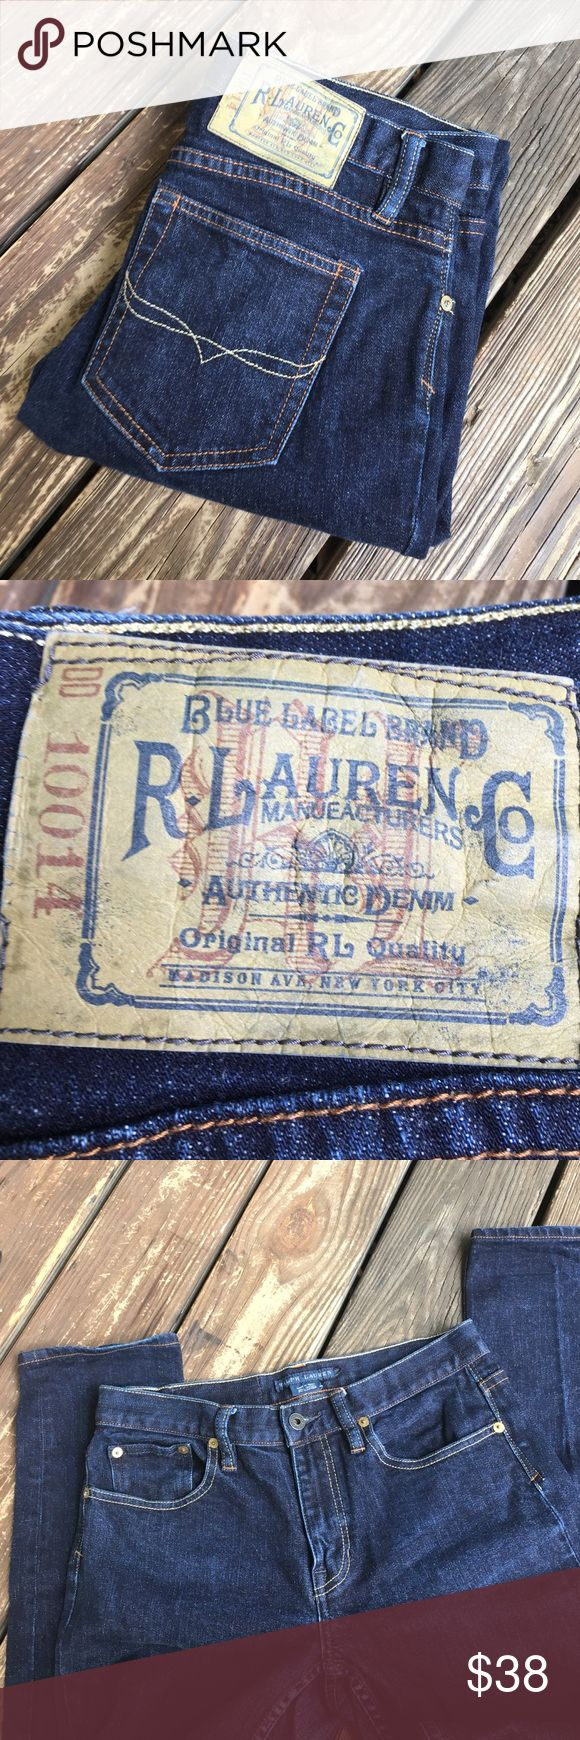 "Ralph Lauren Thompson 650 Jeans Very nice pair of straight leg jeans. 98% cotton 2% elastane.  New condition. Size 29.  Waist 30 and inseam 31"".  Reasonable offers are always welcome.  PT68 Ralph Lauren Blue Label Jeans Straight Leg"